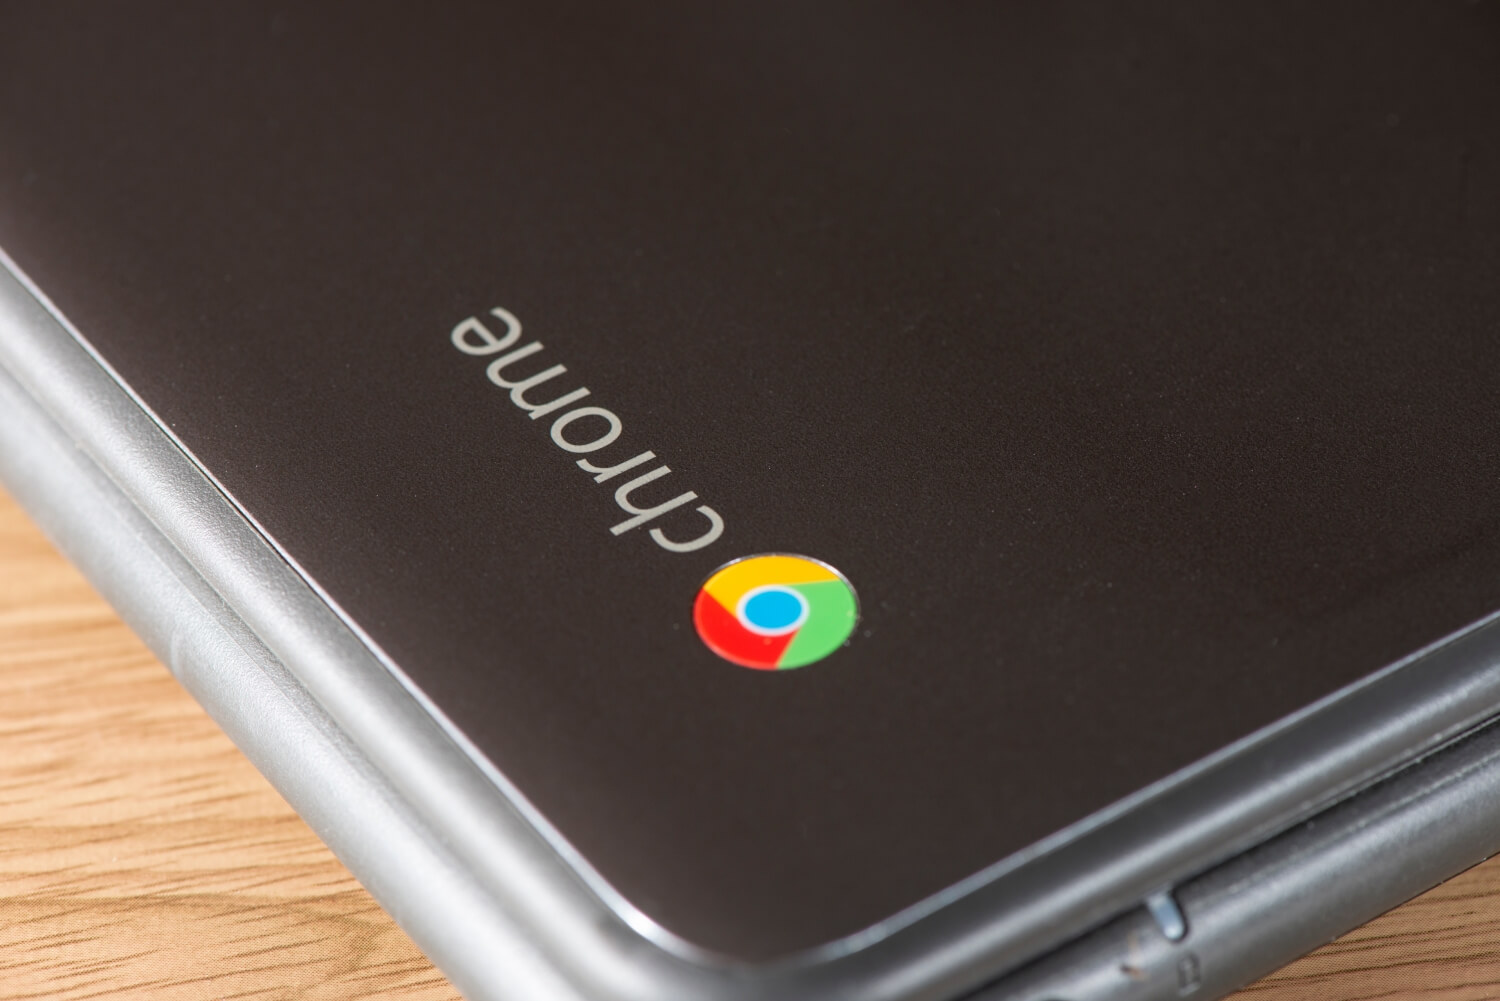 Google rolls out fix after ChromeOS update causes 100% CPU utilization, overheating